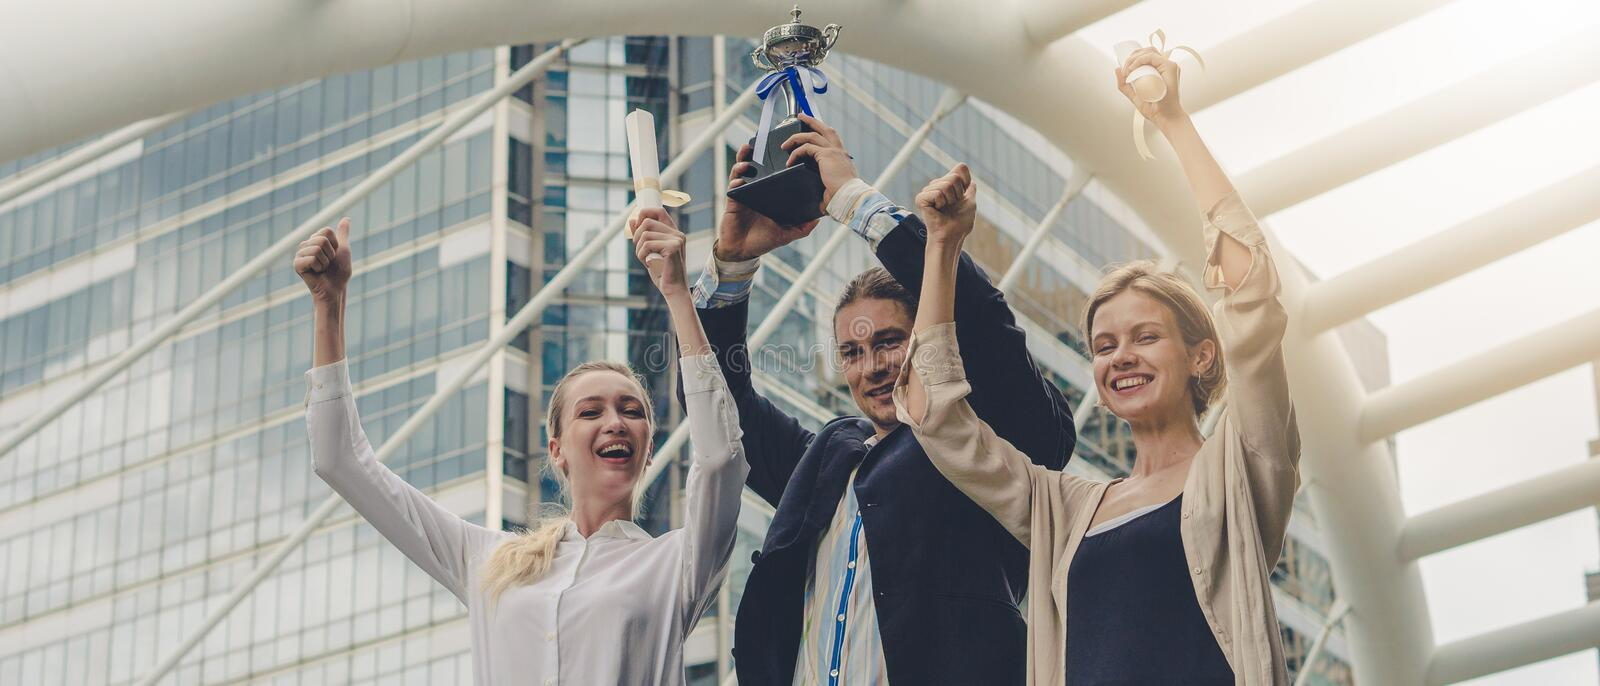 Business background of business people in business wear are cheerful for being winner in business competition contest with hand royalty free stock photos